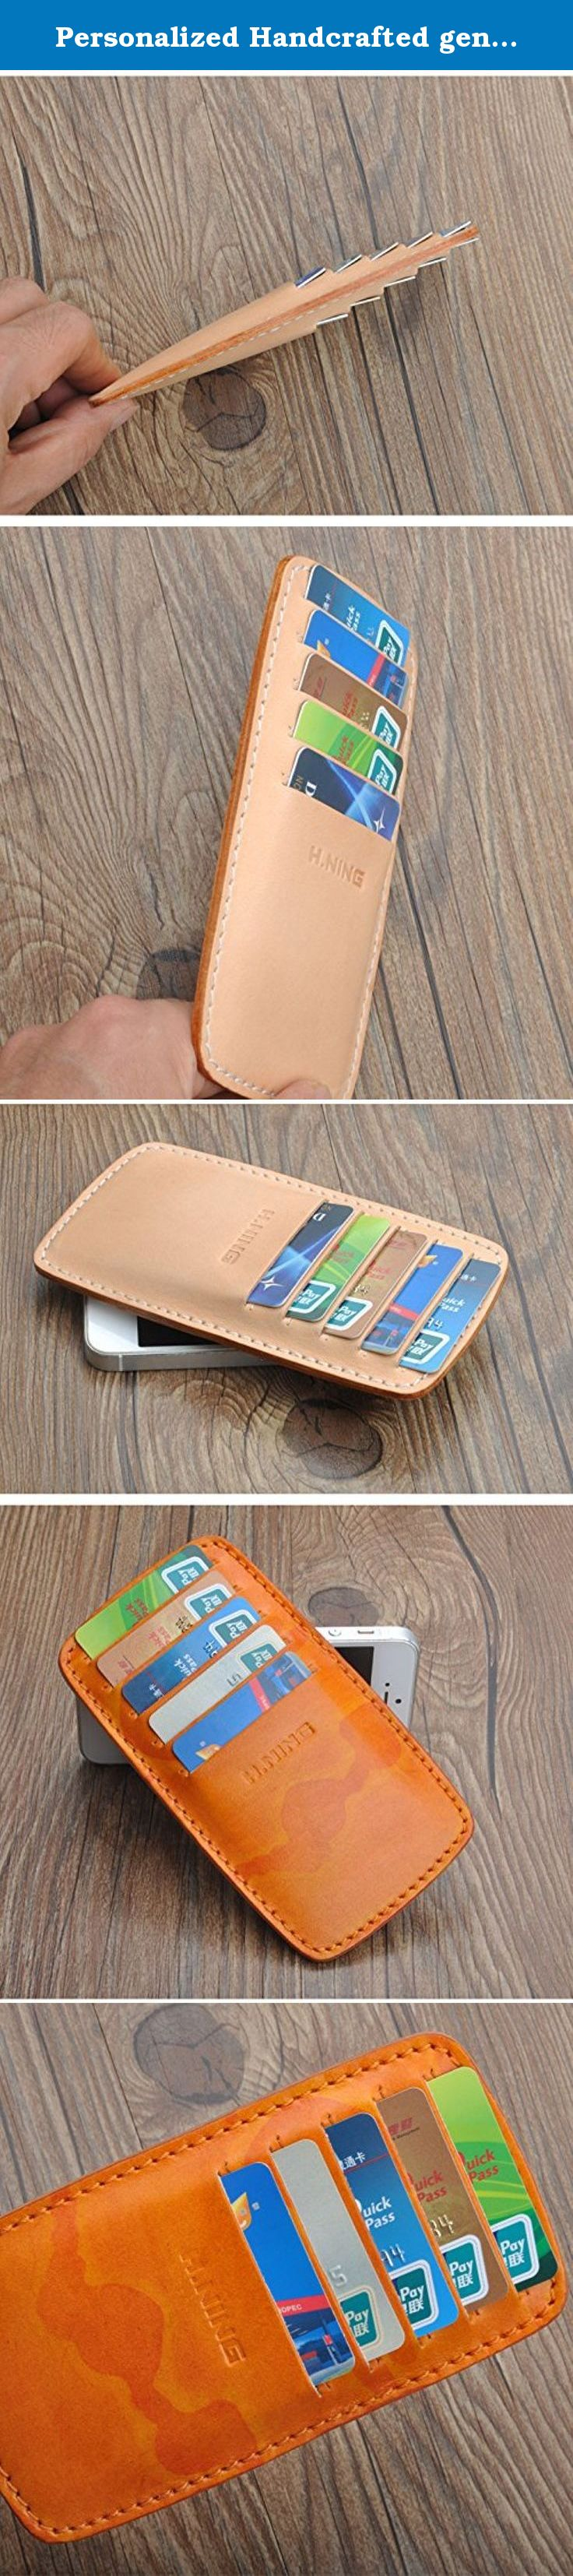 Personalized handcrafted genuine leather card holder